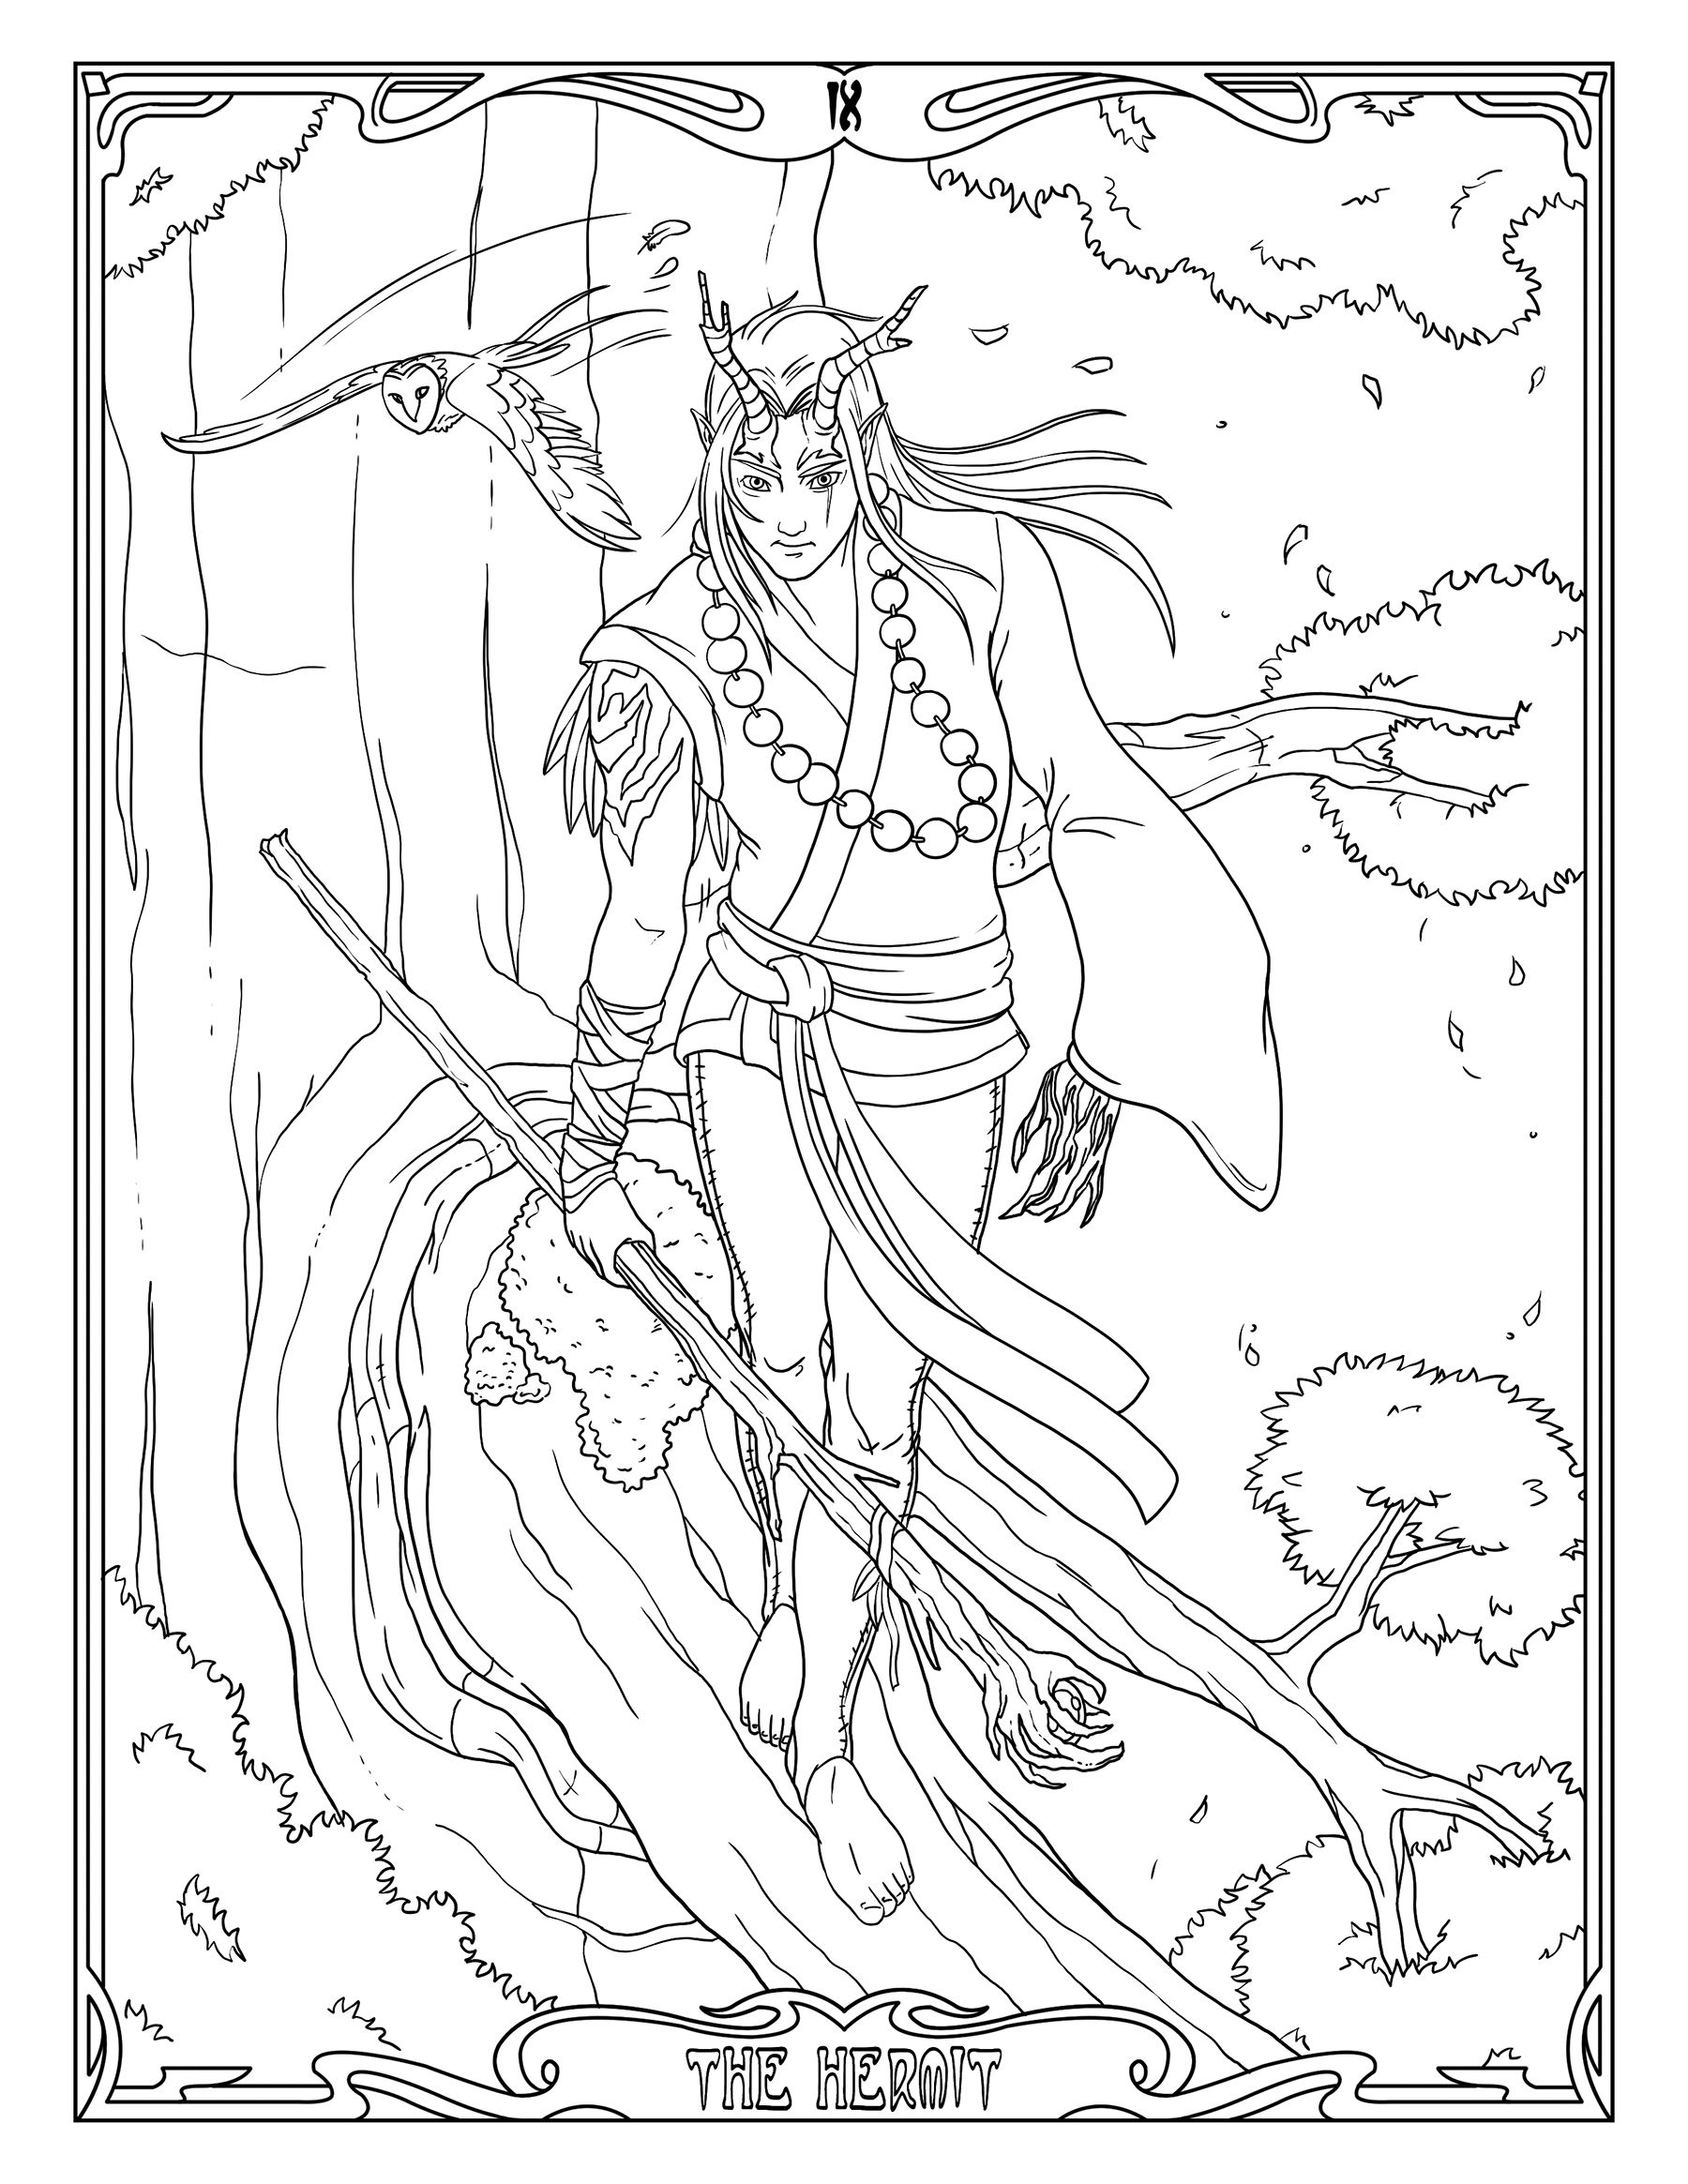 Tarot Coloring Page The Hermit, Druid Printable Coloring